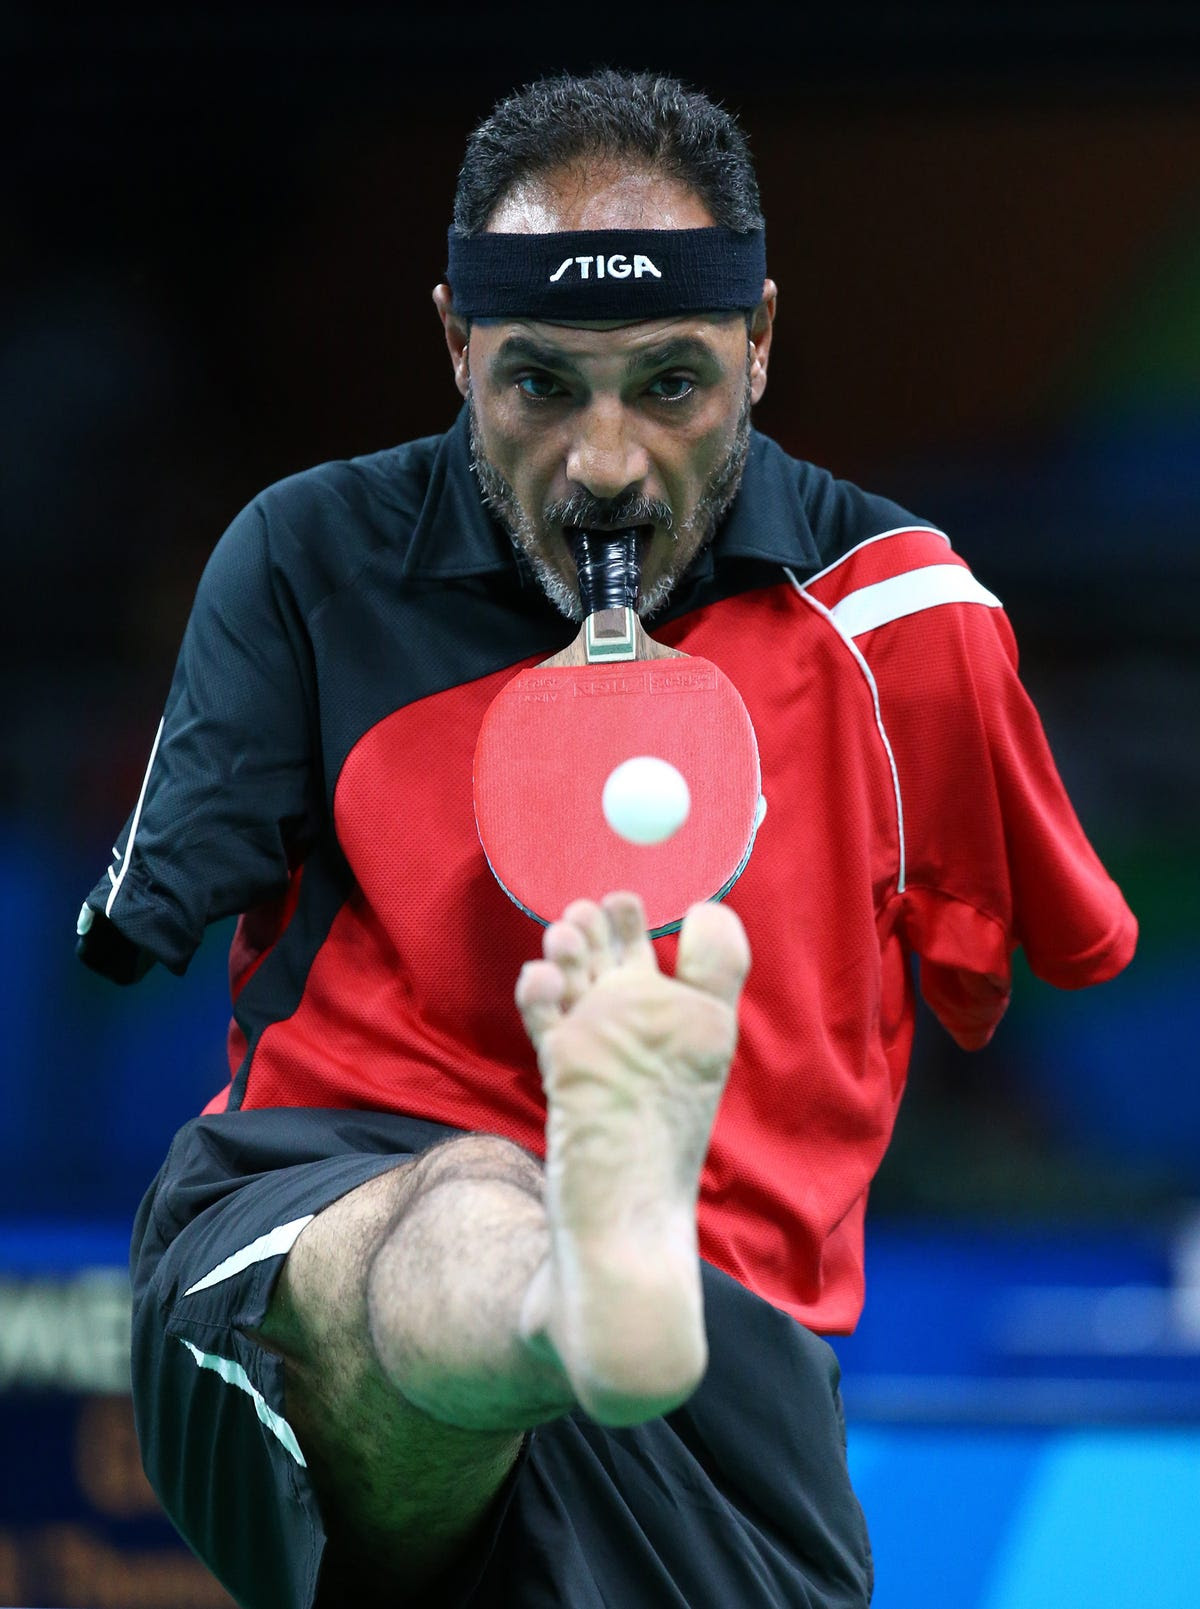 Ibrahim Hamadtou, a 43-year-old Egyptian, competes in table tennis despite not having arms.